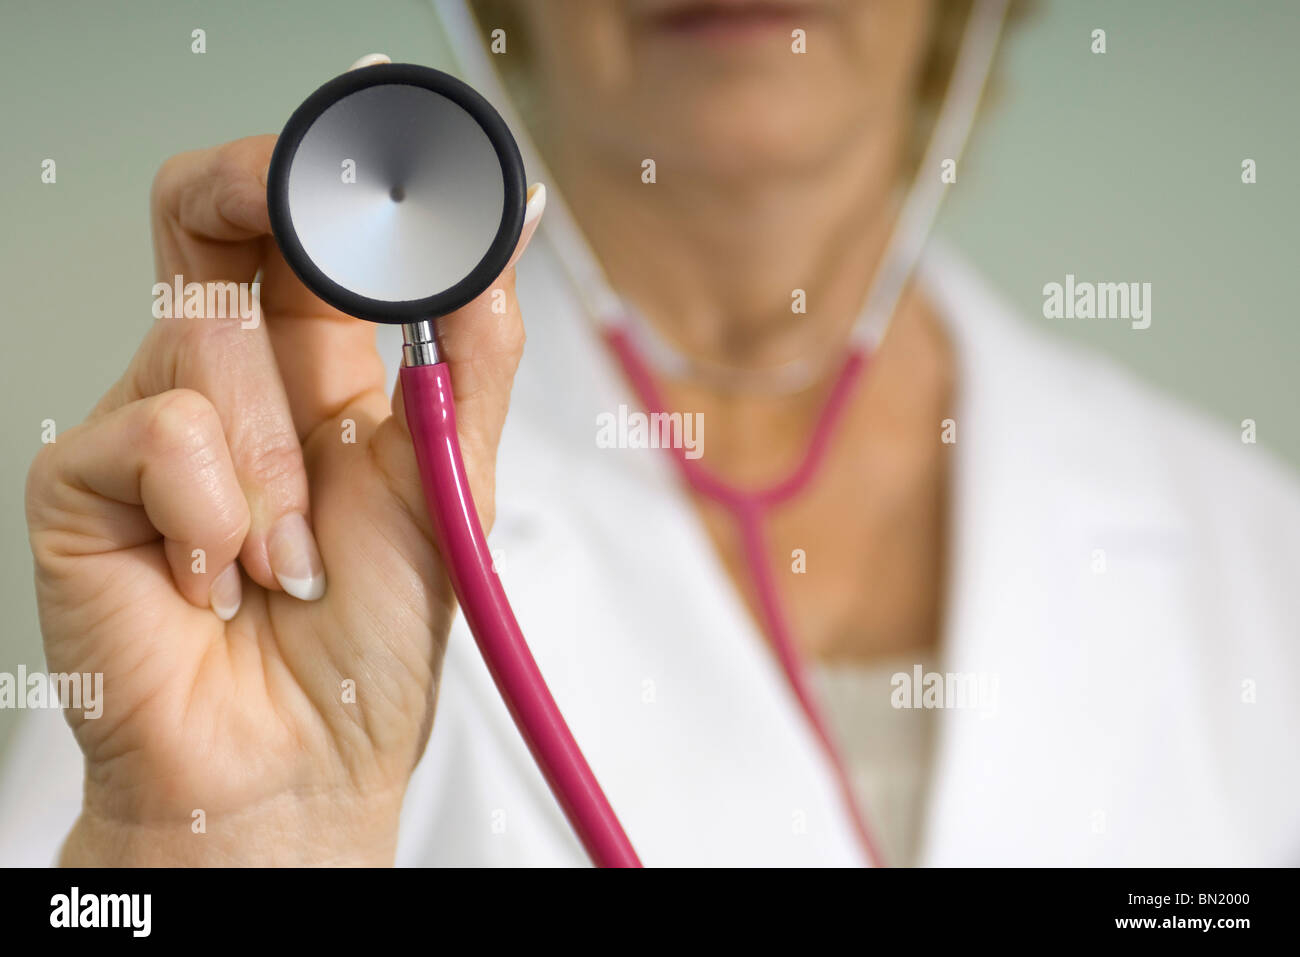 Doctor with stethoscope preparing to give medical exam - Stock Image